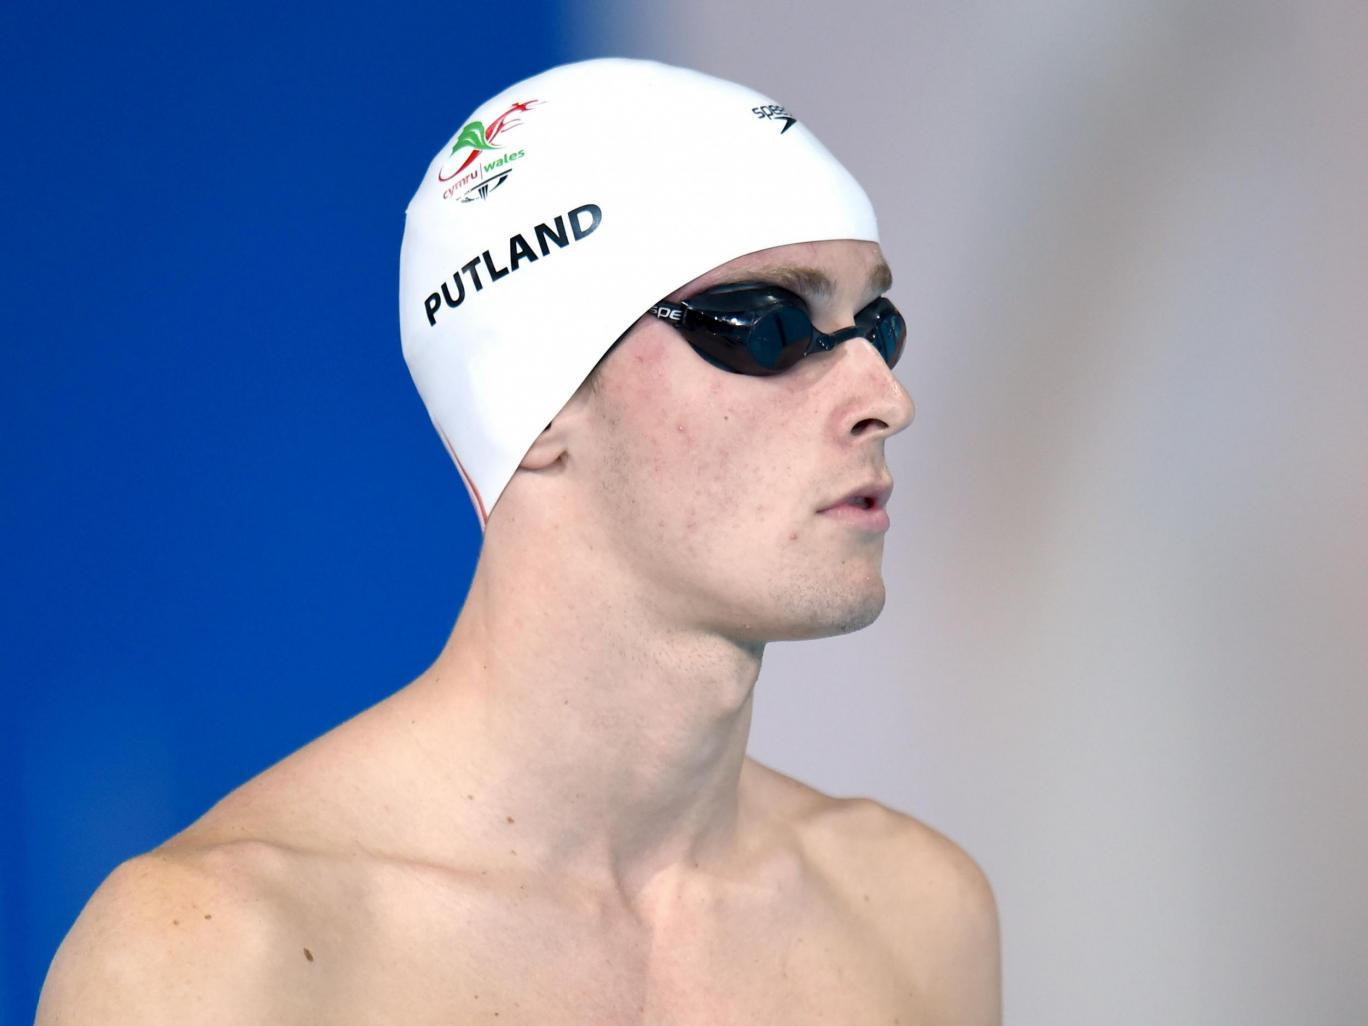 Otto Putland, at the Men's 100m Backstroke during the 2014 Commonwealth Games in Glasgow, allegedly had sex with the girl twice PA Archive/PA Images